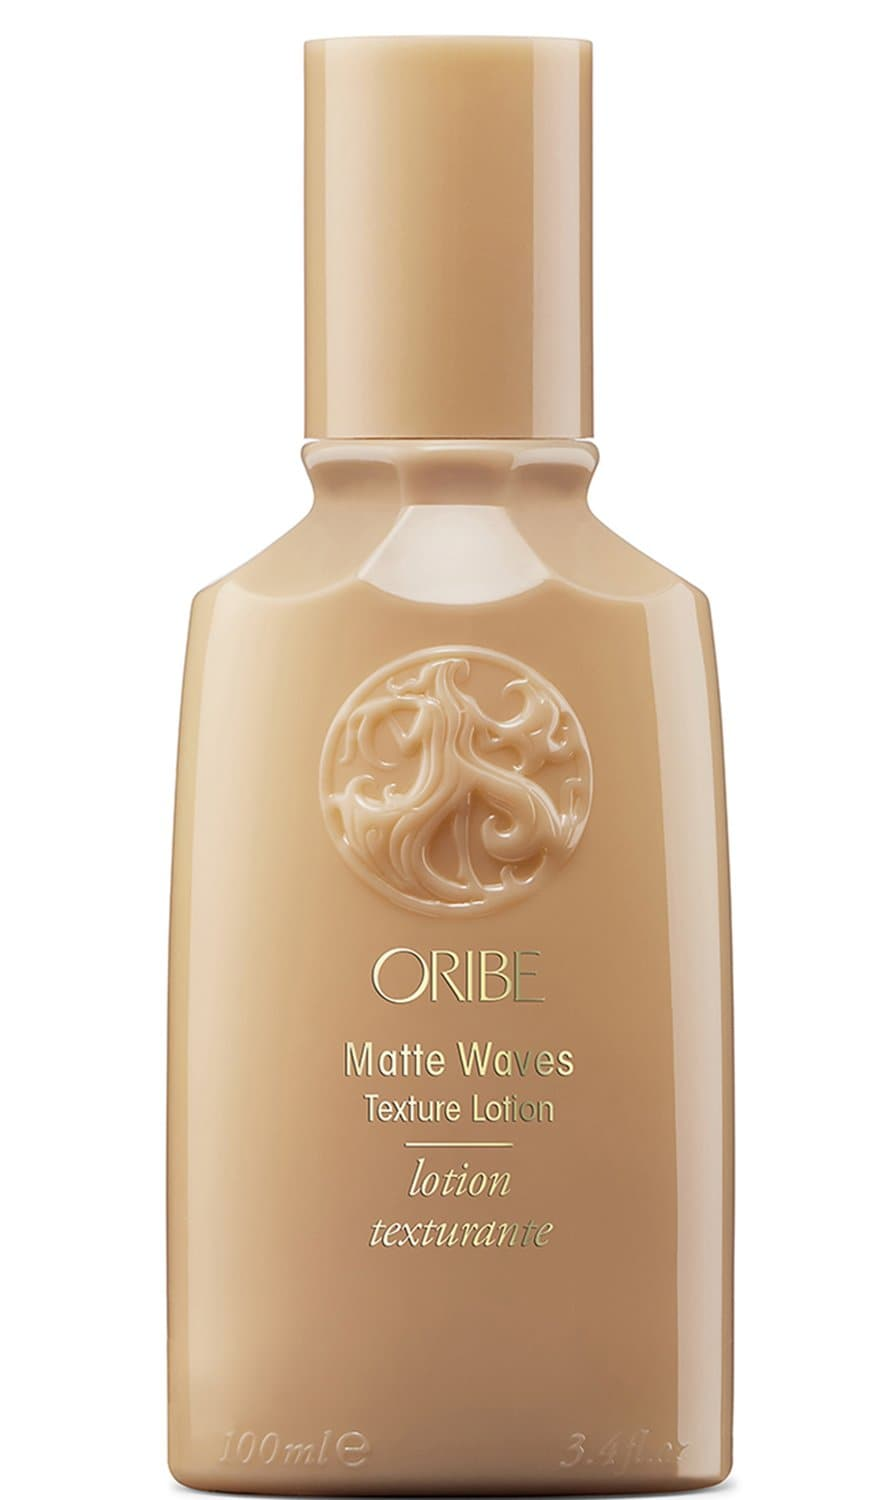 Matte Waves Texture Lotion 100ml | Oribe